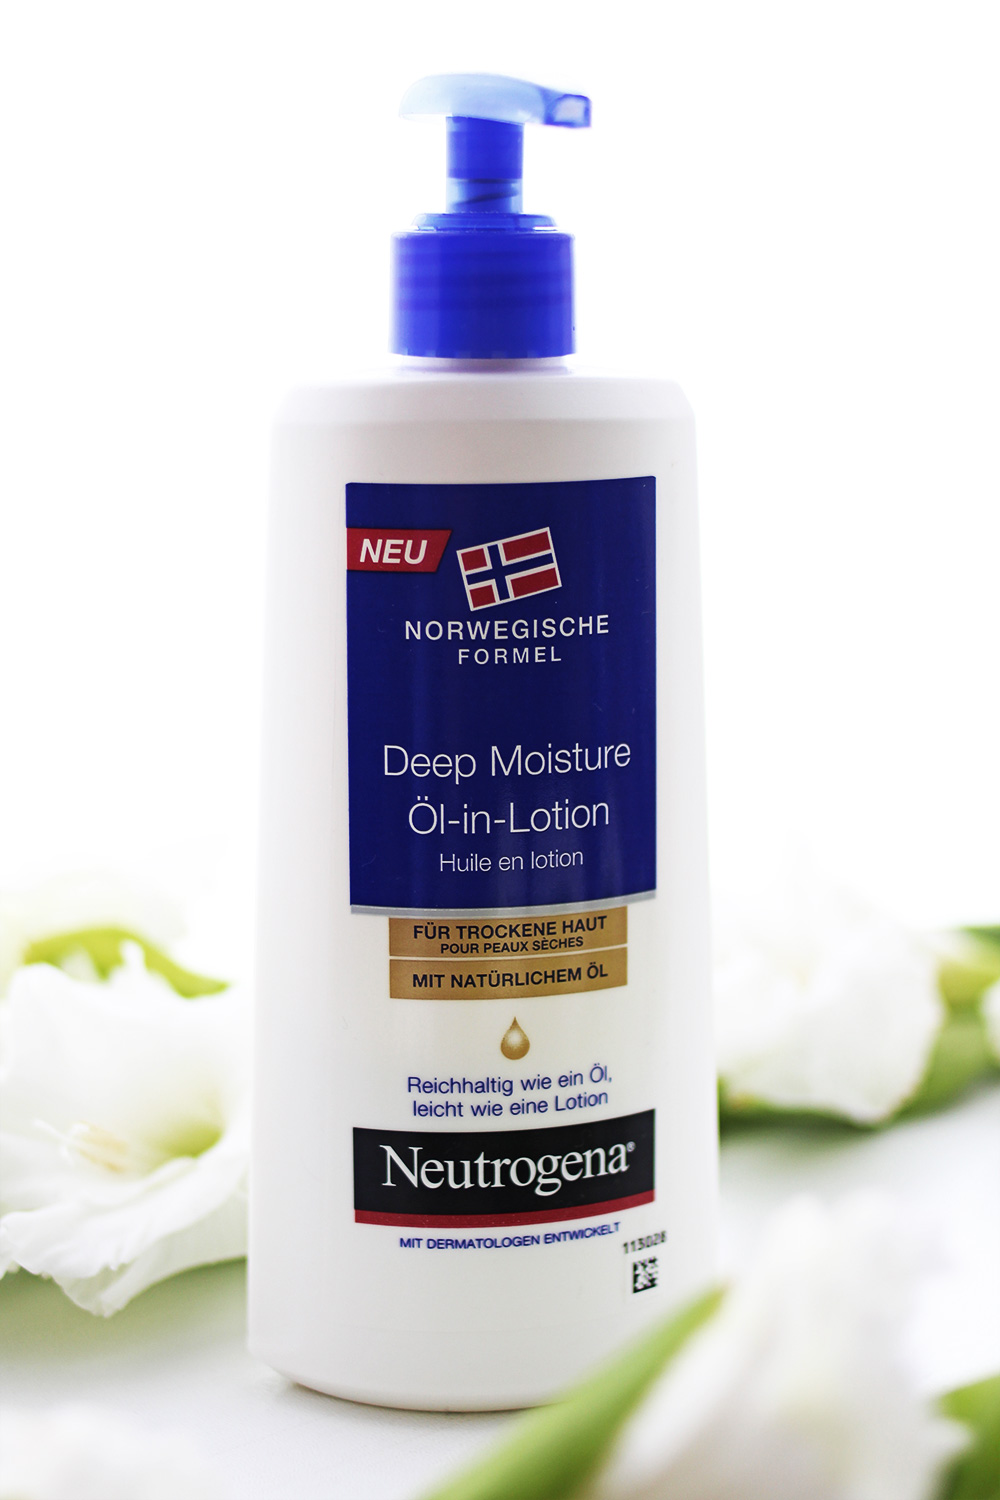 Neutrogena-Koerperlotion-review-beauty